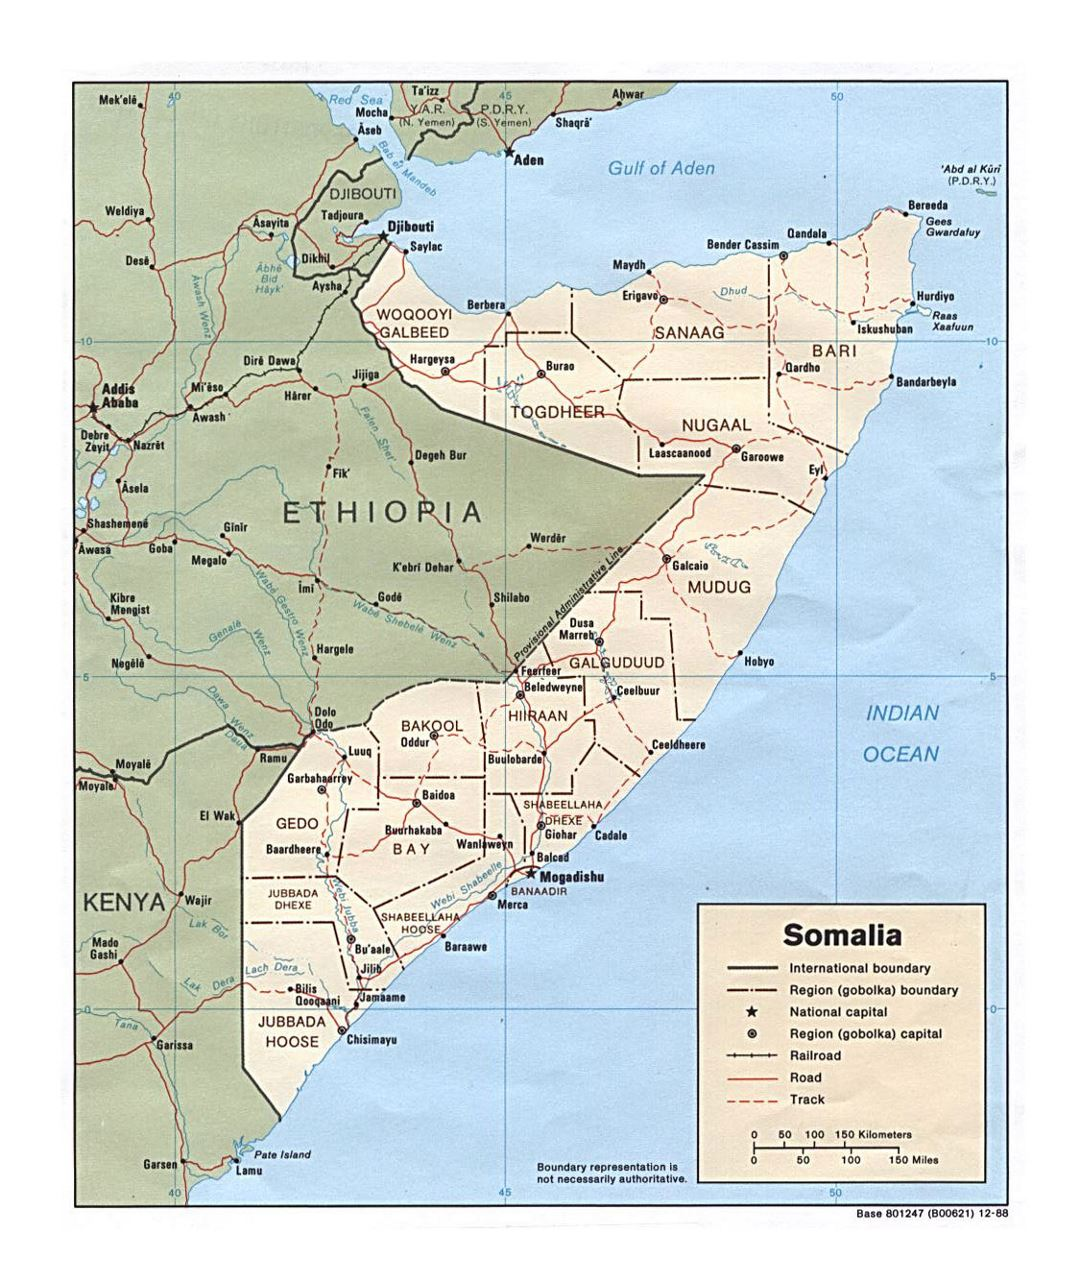 Detailed political and administrative map of Somalia with roads, railroads and cities - 1988